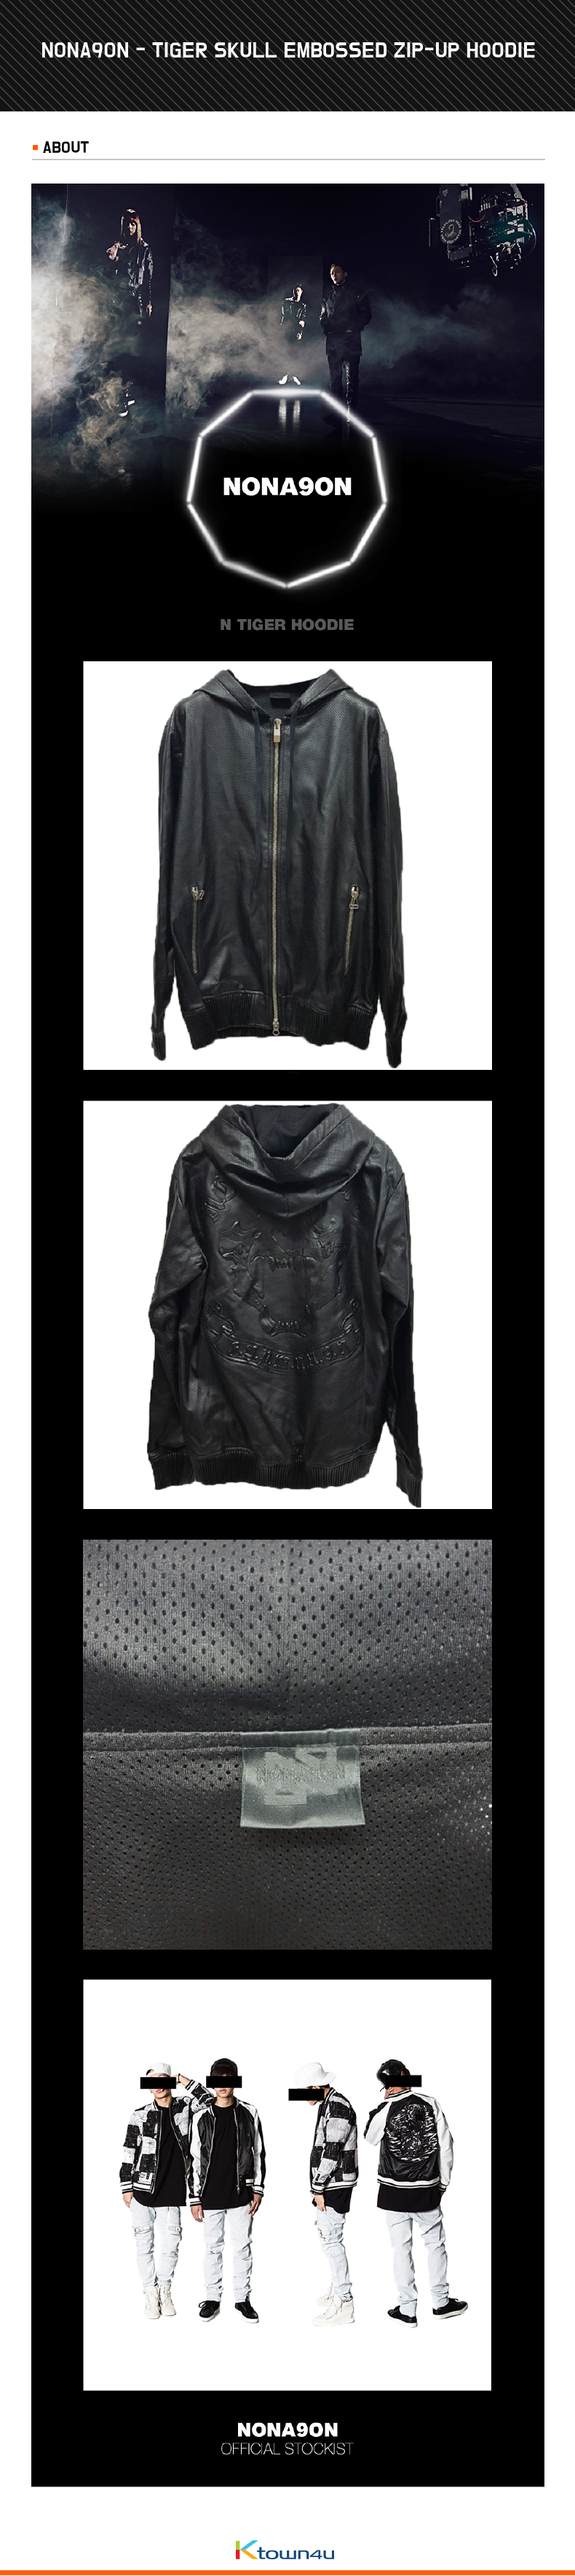 NONA9ON - [MEN'S] TIGER SKULL EMBOSSED ZIP-UP HOODIE